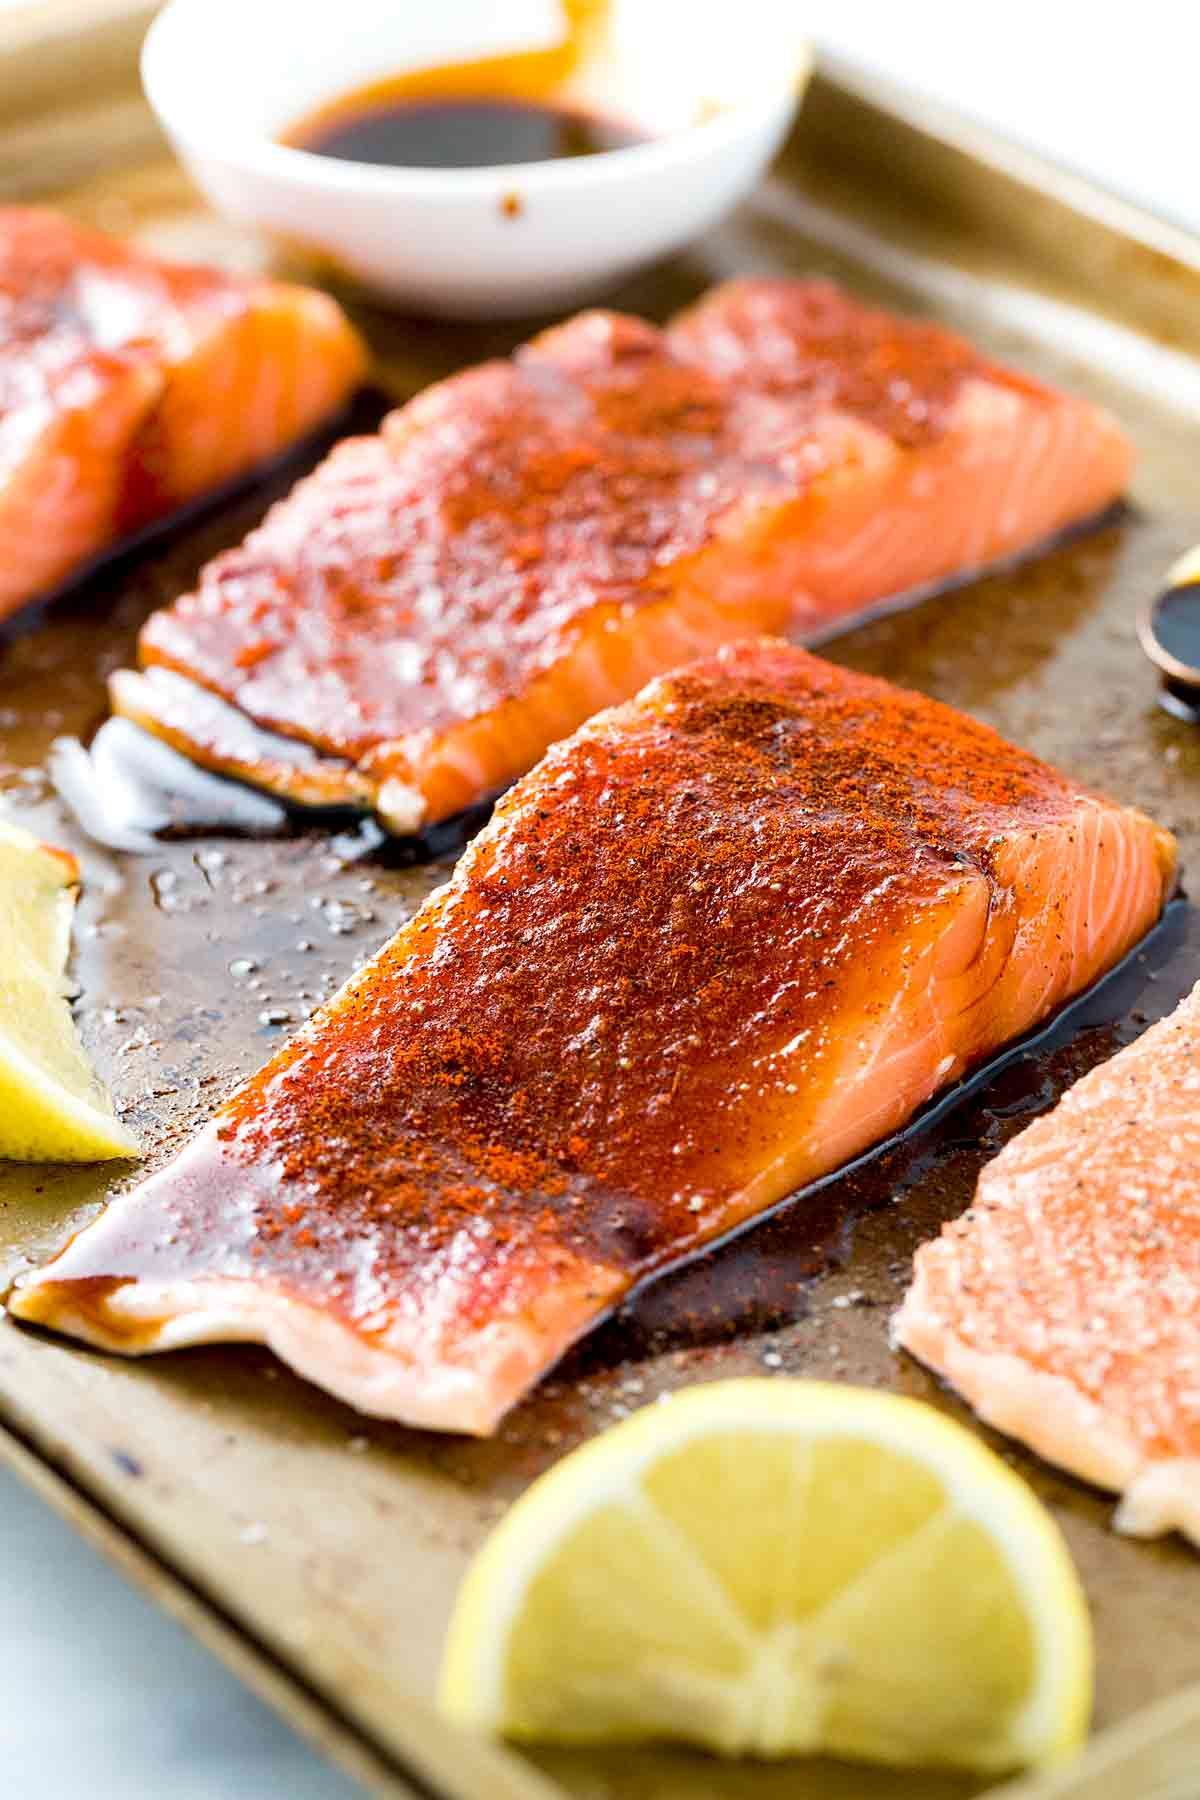 Salmon fillets on sheet pan with dried spices